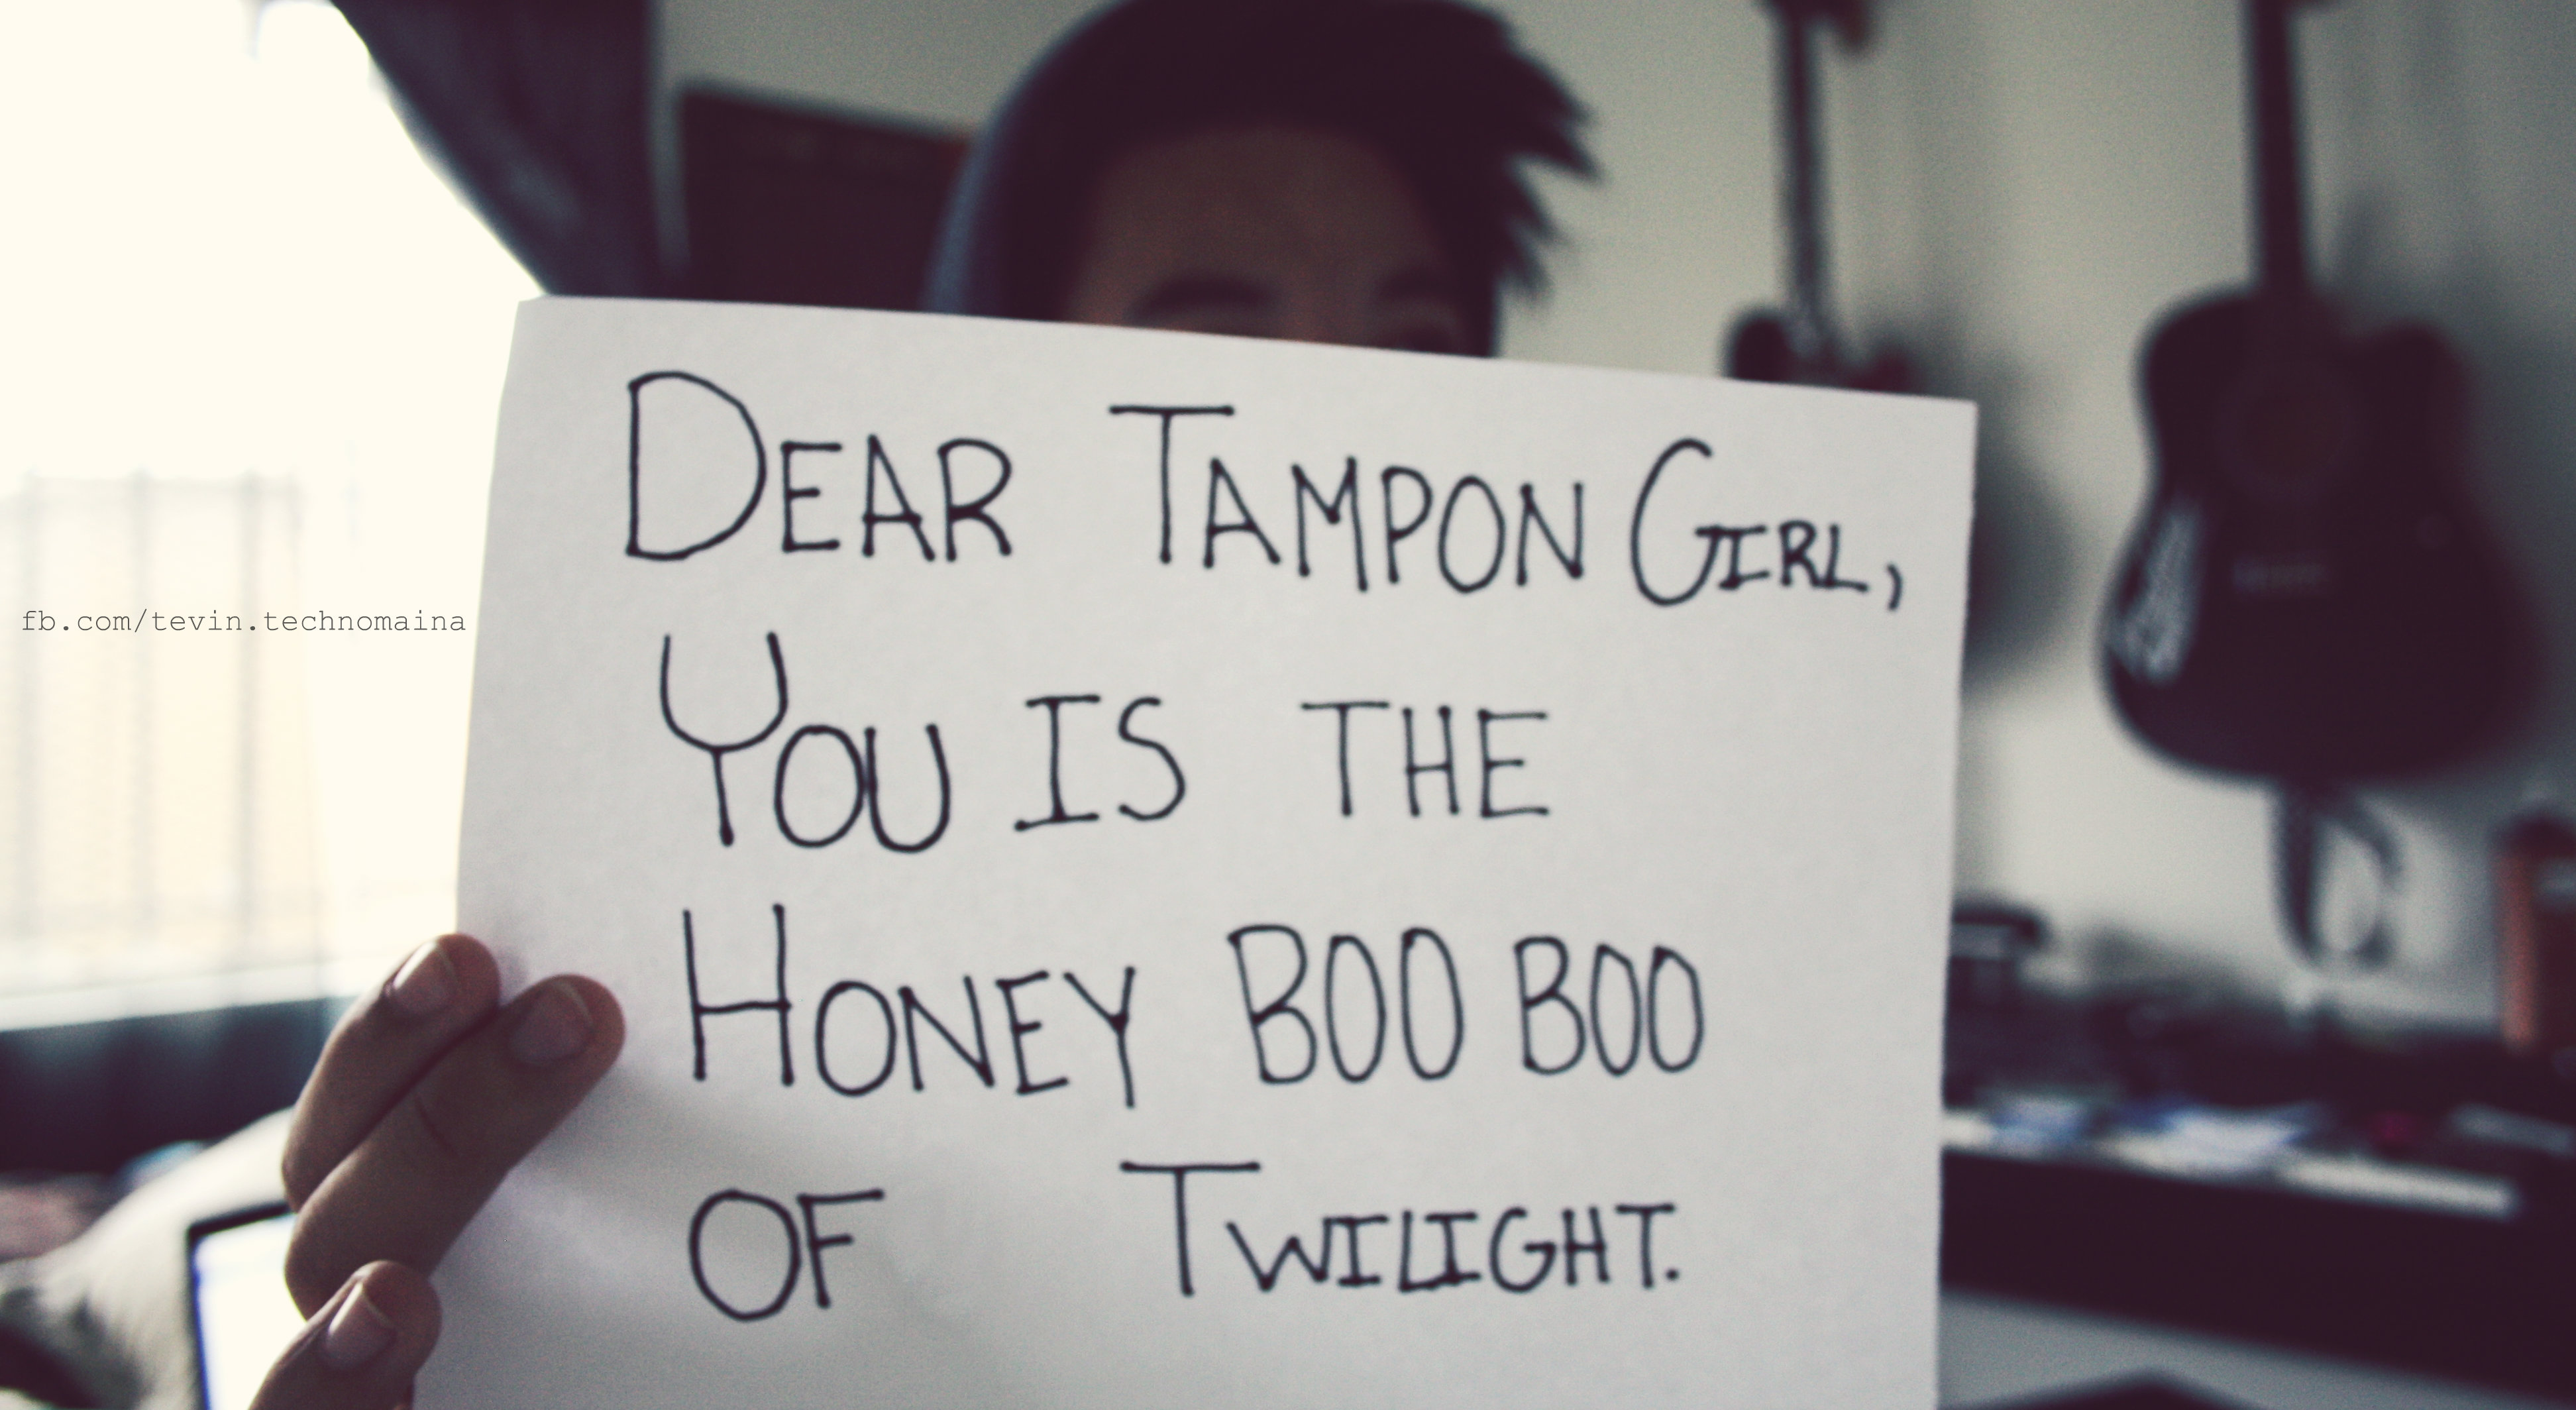 Tampon quotes